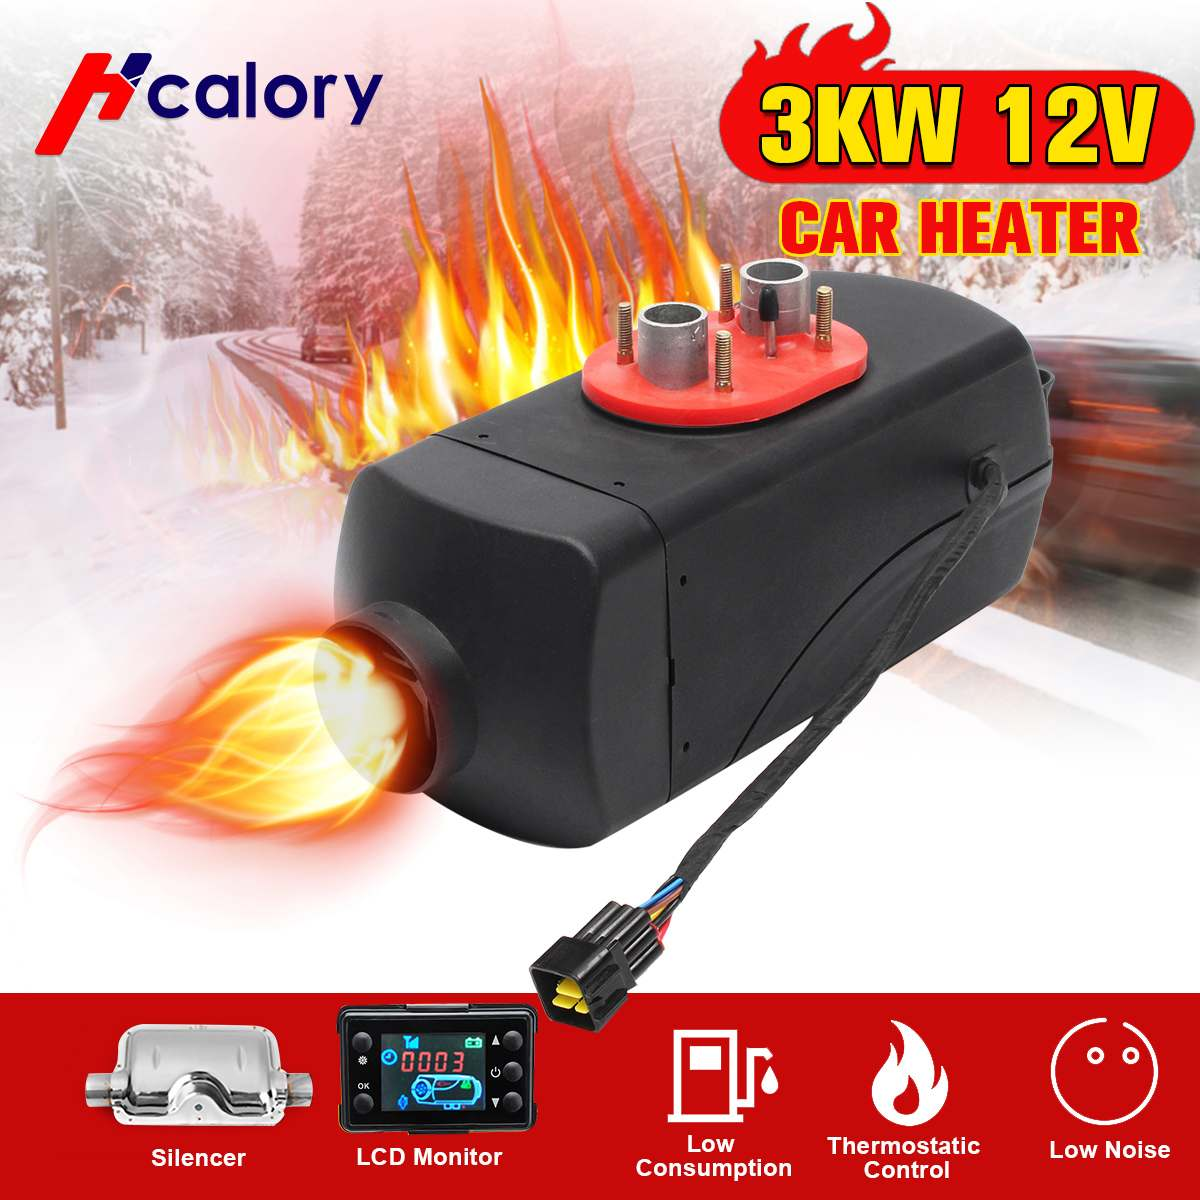 Car Heater 3KW 12V Air Diesels Heater Parking Heater With Remote Control LCD Monitor For RV, Motorhome Trailer, Trucks, BoatsCar Heater 3KW 12V Air Diesels Heater Parking Heater With Remote Control LCD Monitor For RV, Motorhome Trailer, Trucks, Boats